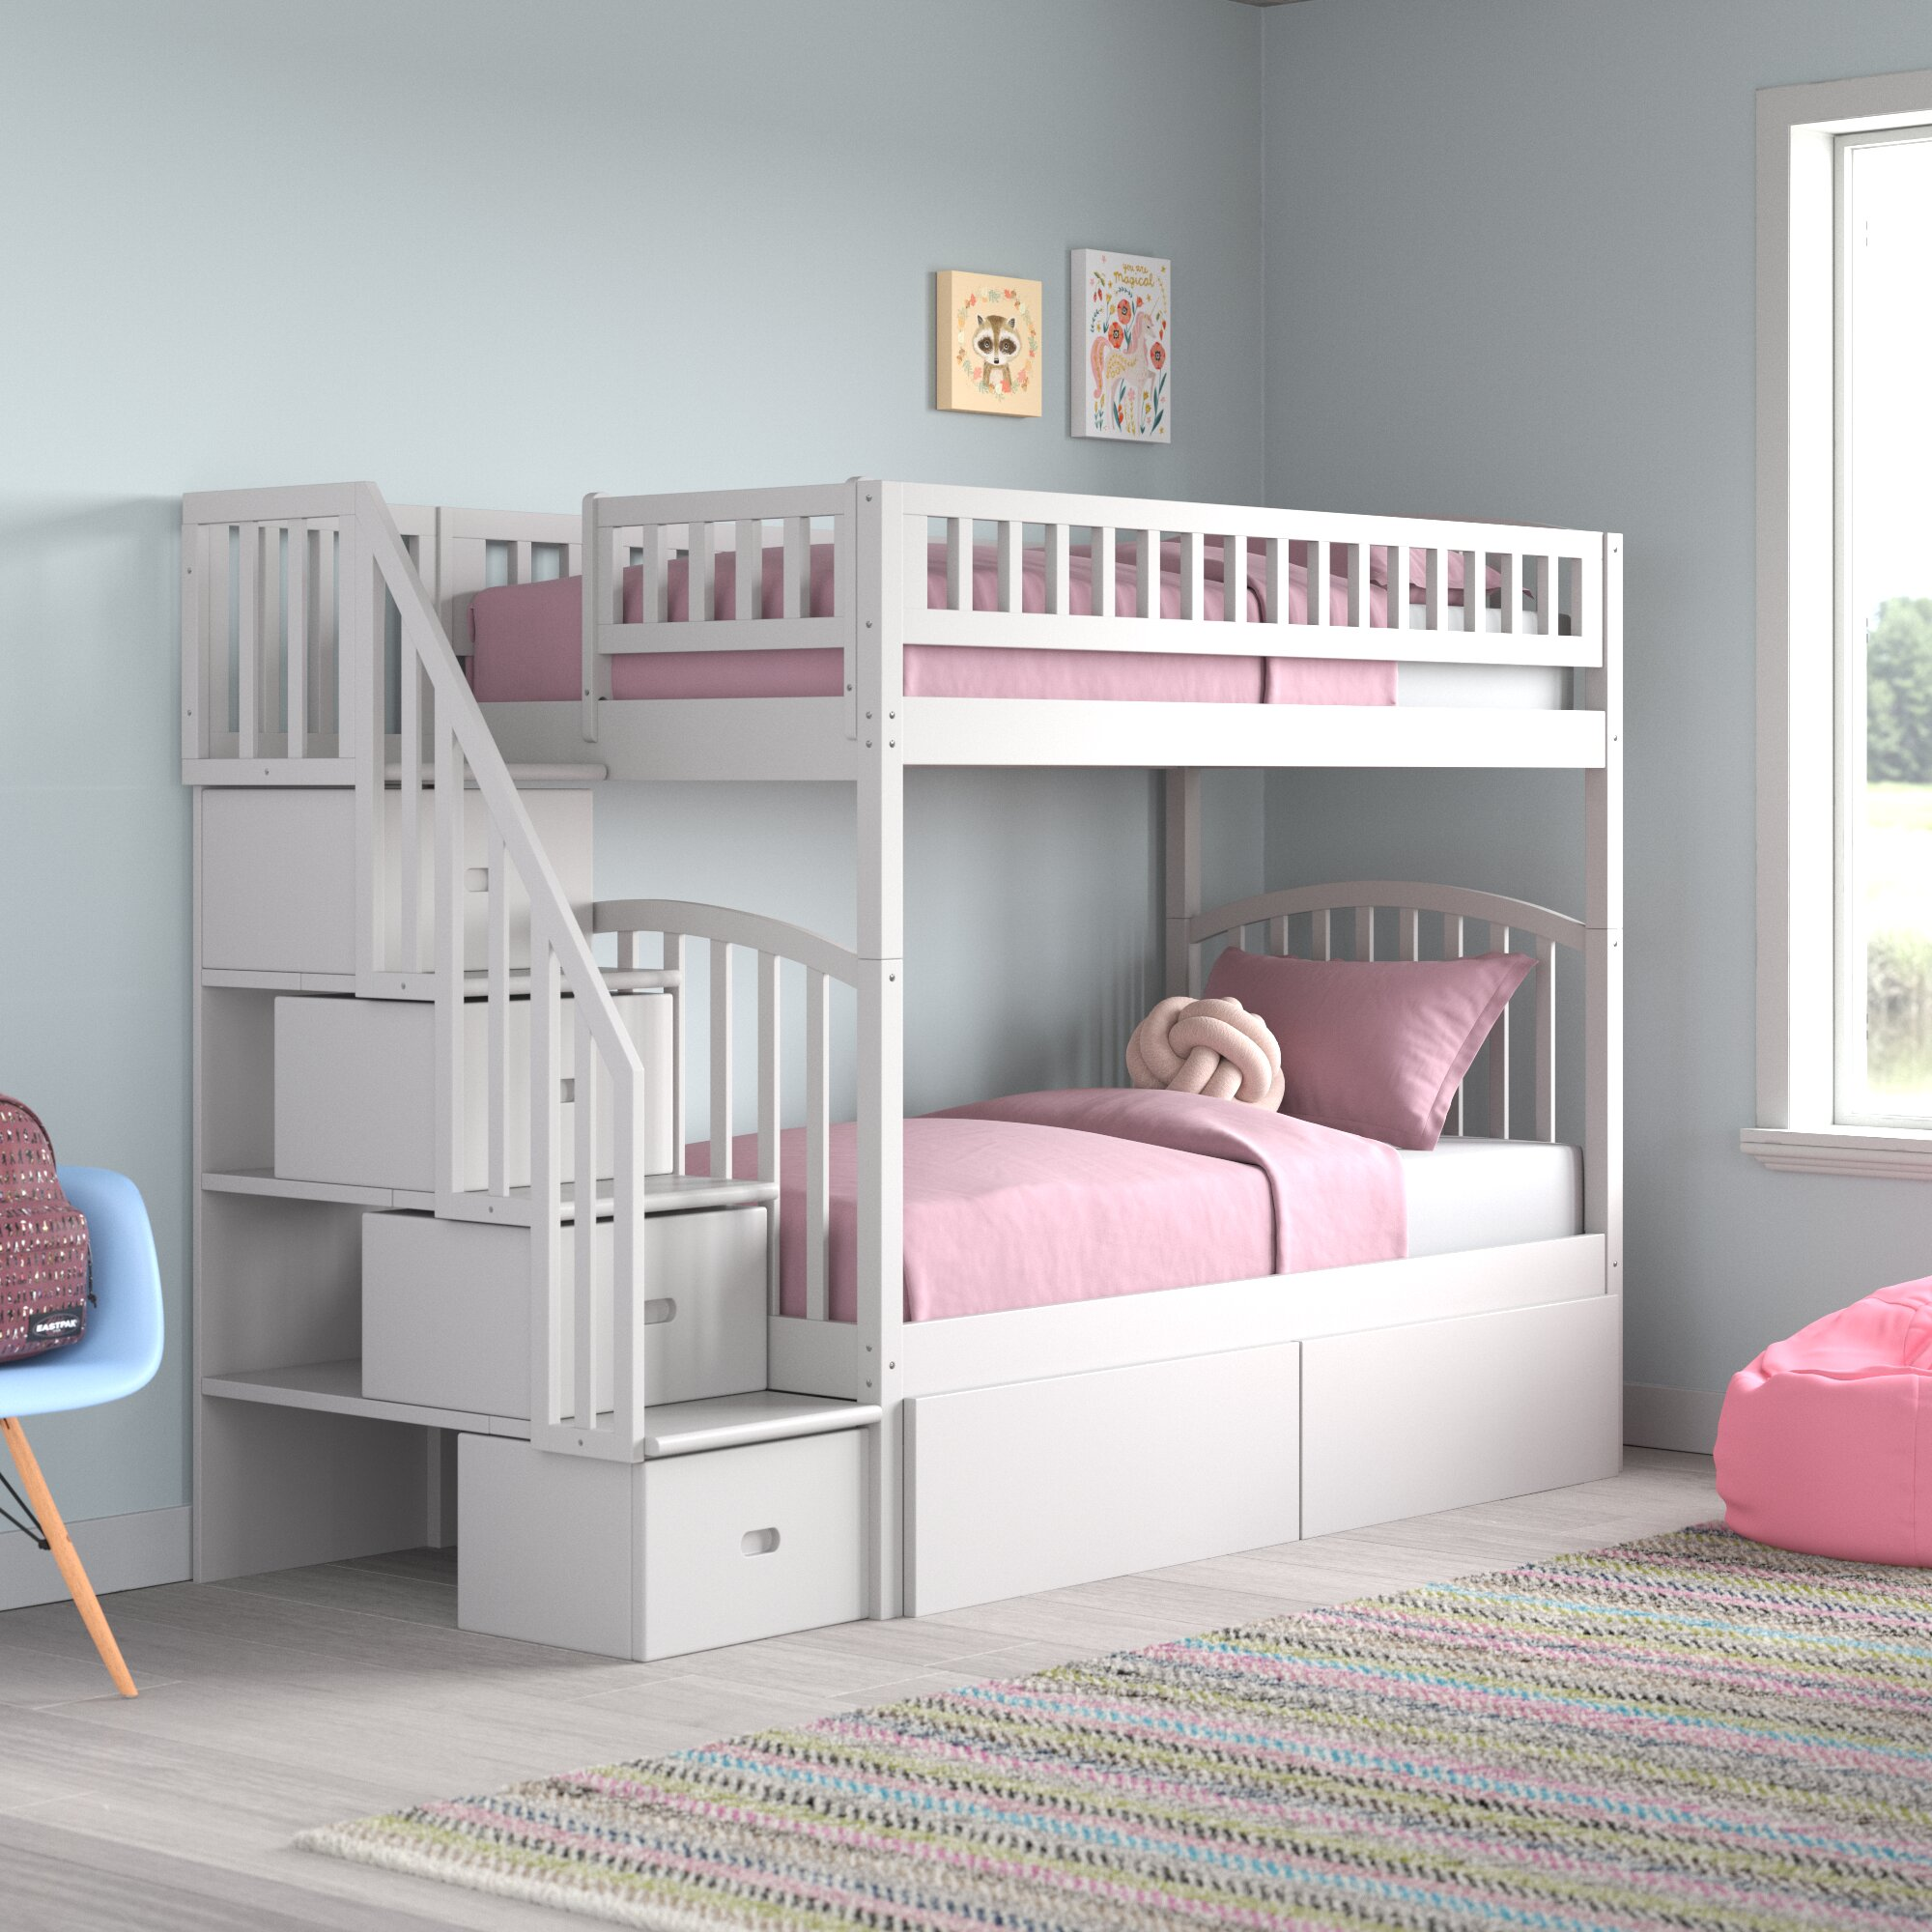 Wayfair Bunk With Stairs Kids Beds You Ll Love In 2021